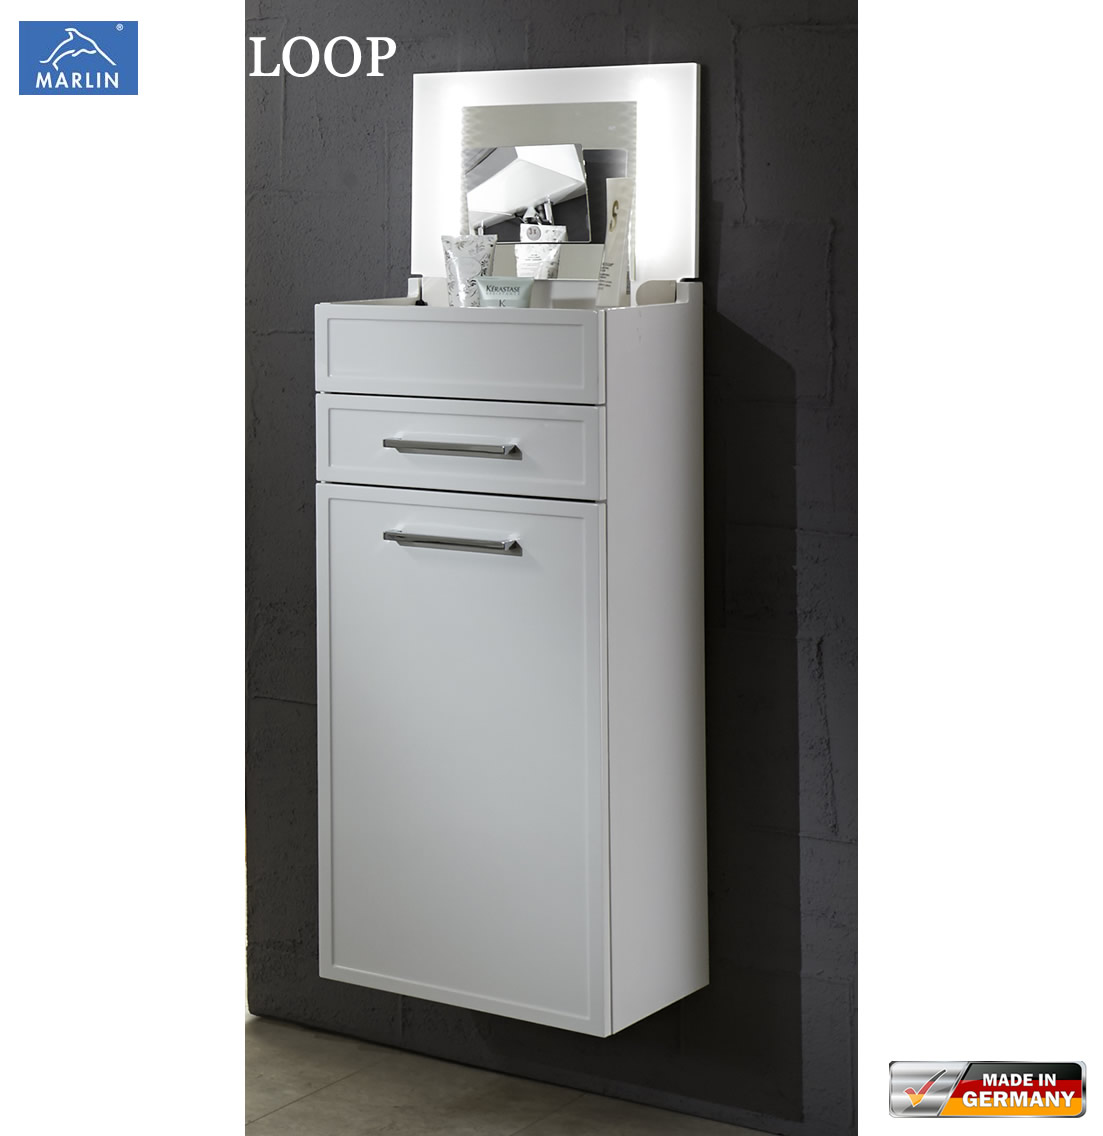 marlin loop schminkschrank 40 cm mit led im deckel 1 t r. Black Bedroom Furniture Sets. Home Design Ideas